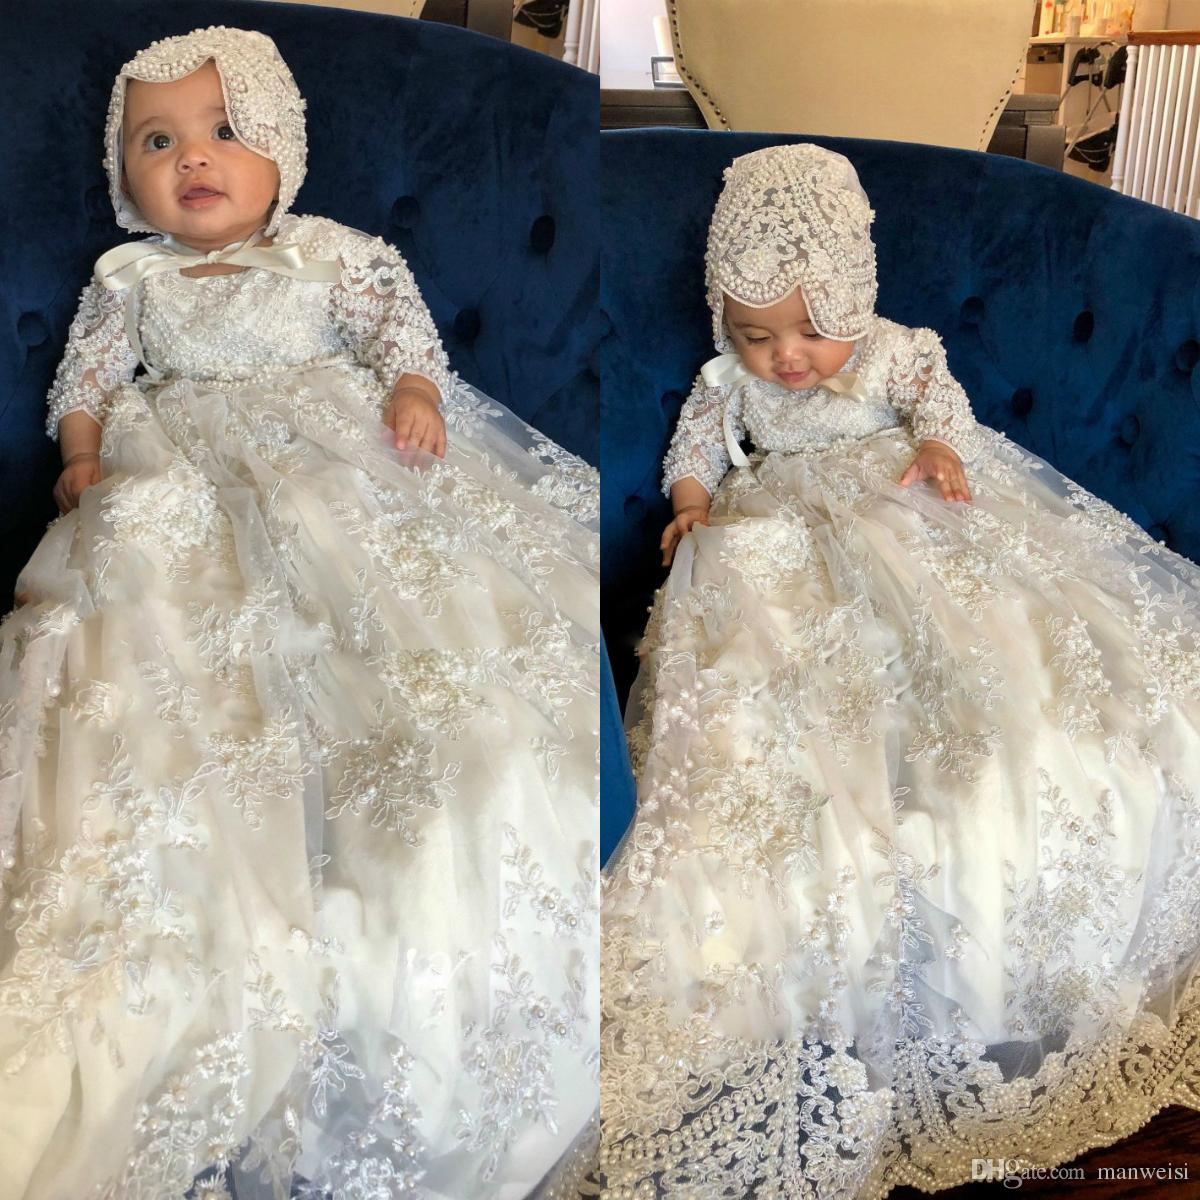 094f57e73 Classy 2019 Long Sleeve Christening Gowns For Baby Girls Lace Appliqued  Pearls Baptism Dresses With Bonnet First Communication Dress Baptism Dress  For Baby ...